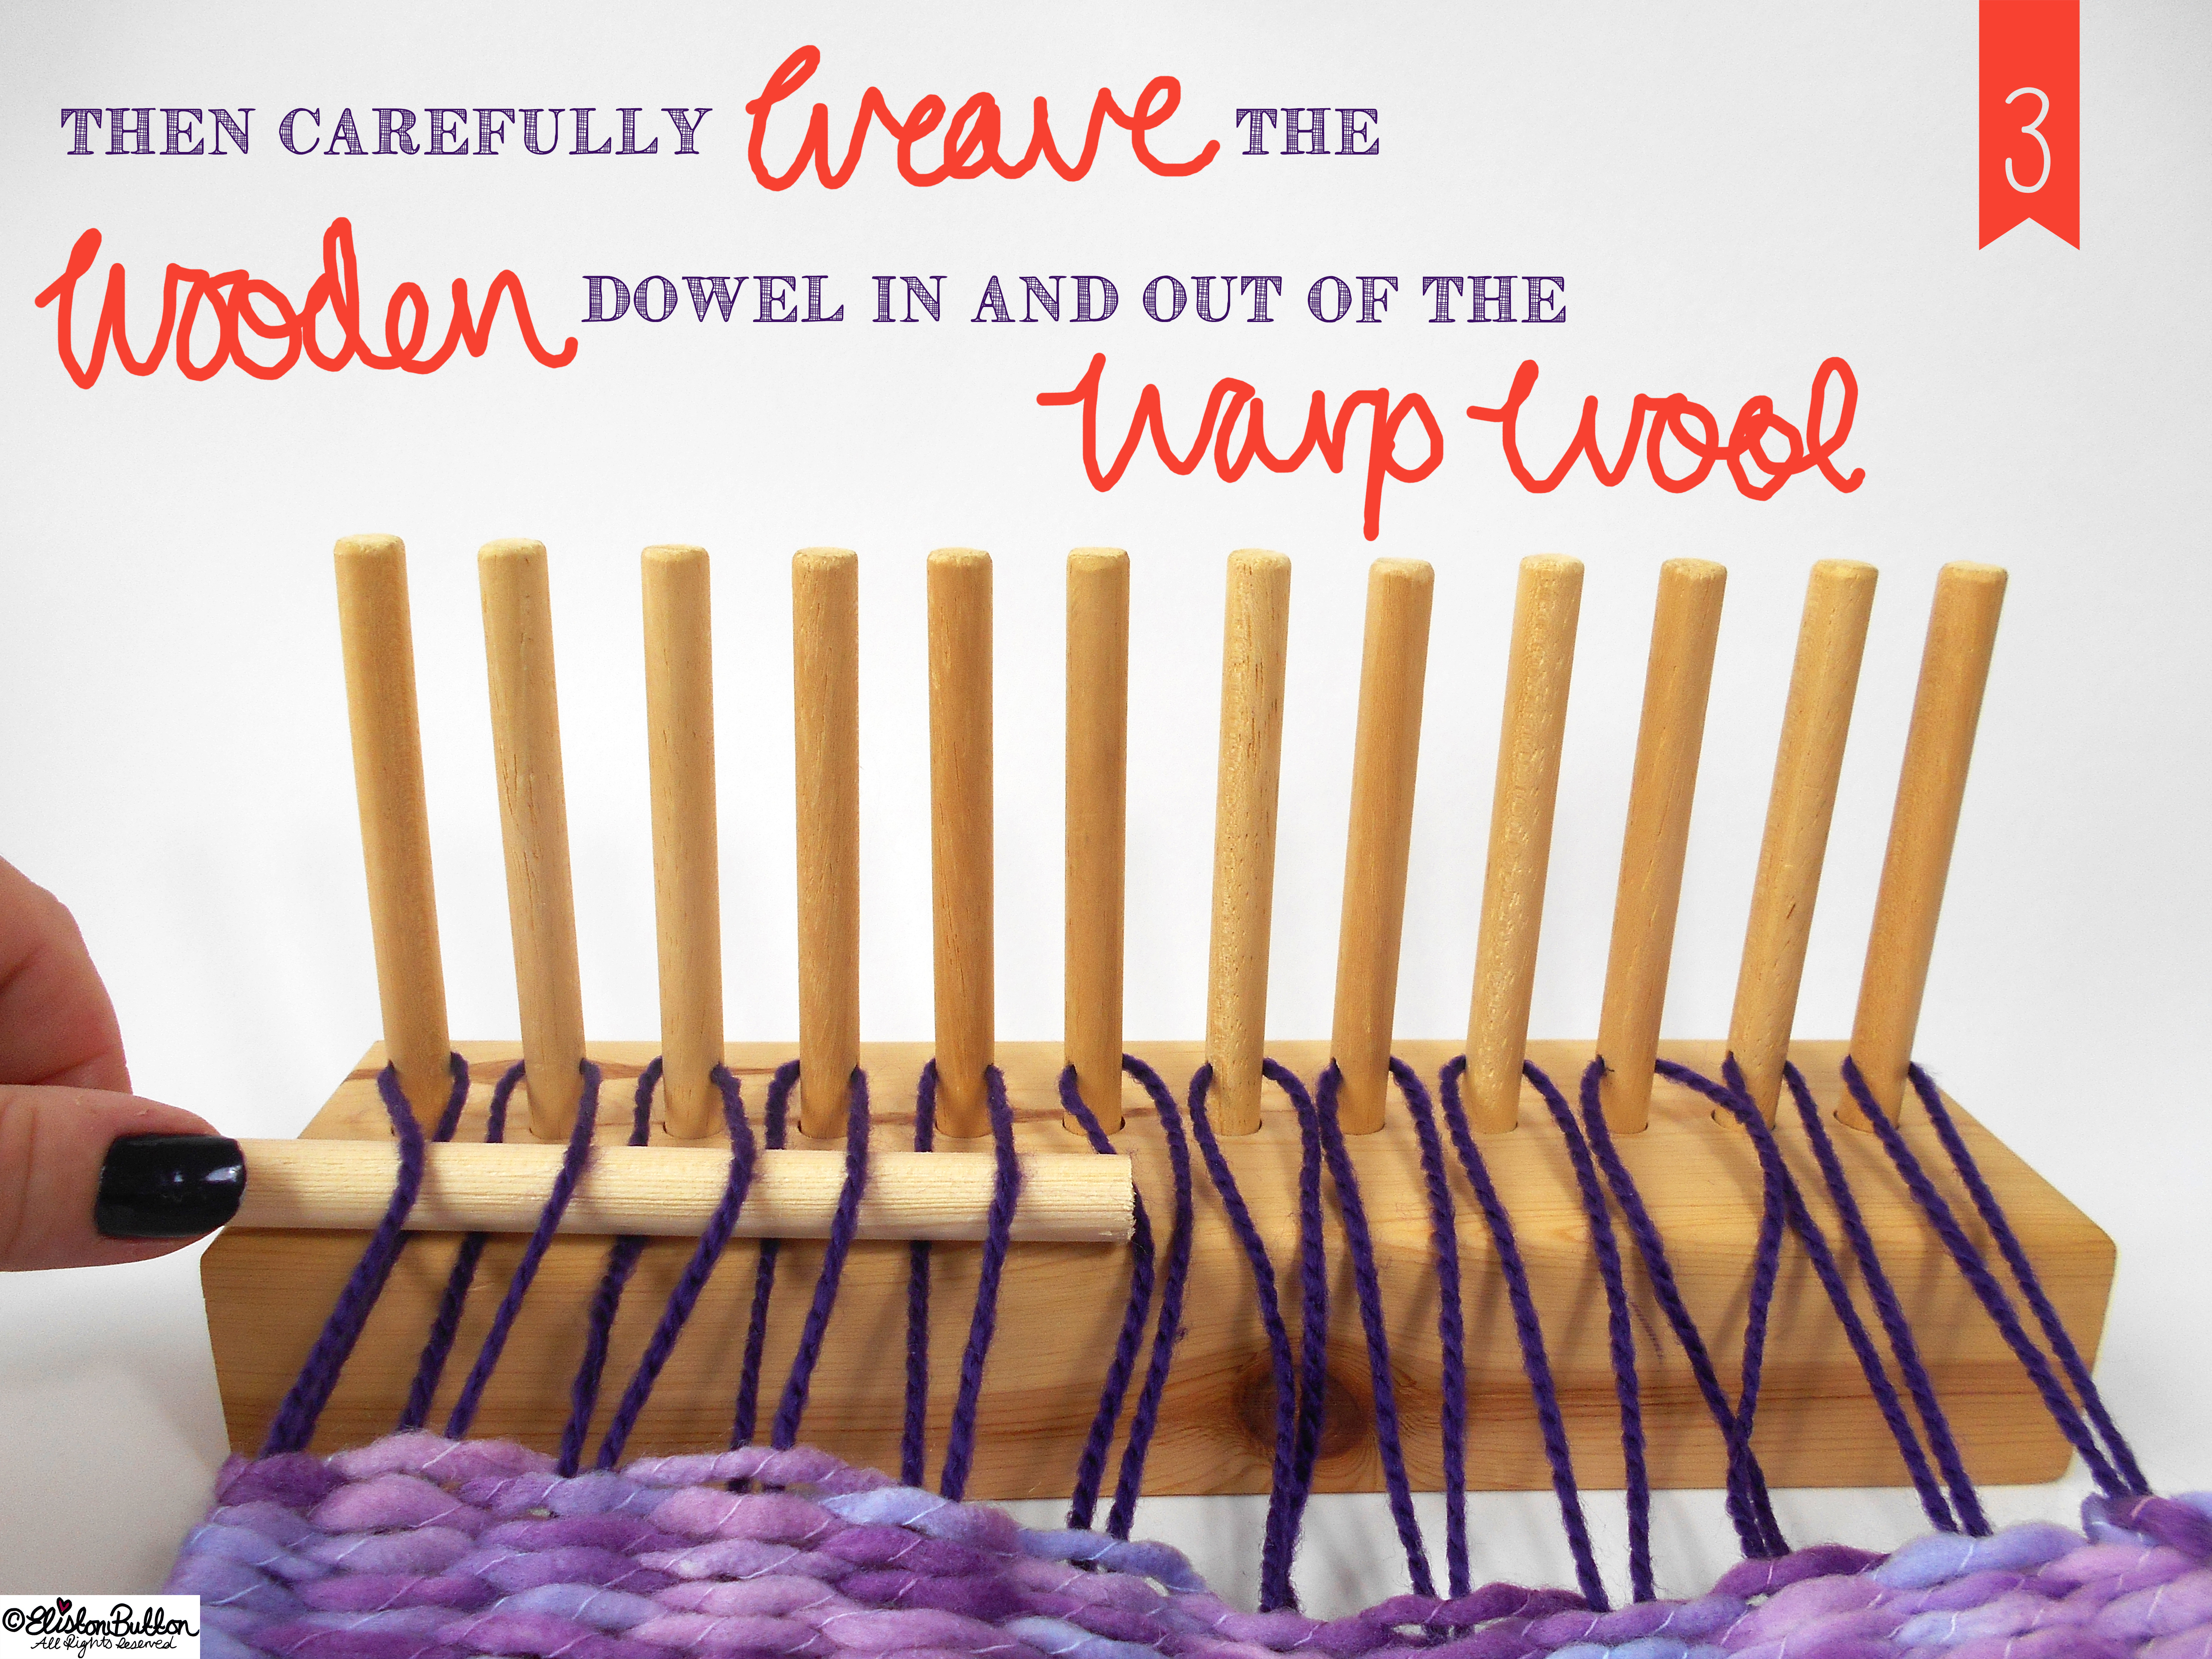 Weave Dowel in and out of the Warp Threads. - Tutorial Tuesday - Peg Loom Weaving - Part Two at www.elistonbutton.com - Eliston Button - That Crafty Kid – Art, Design, Craft & Adventure.